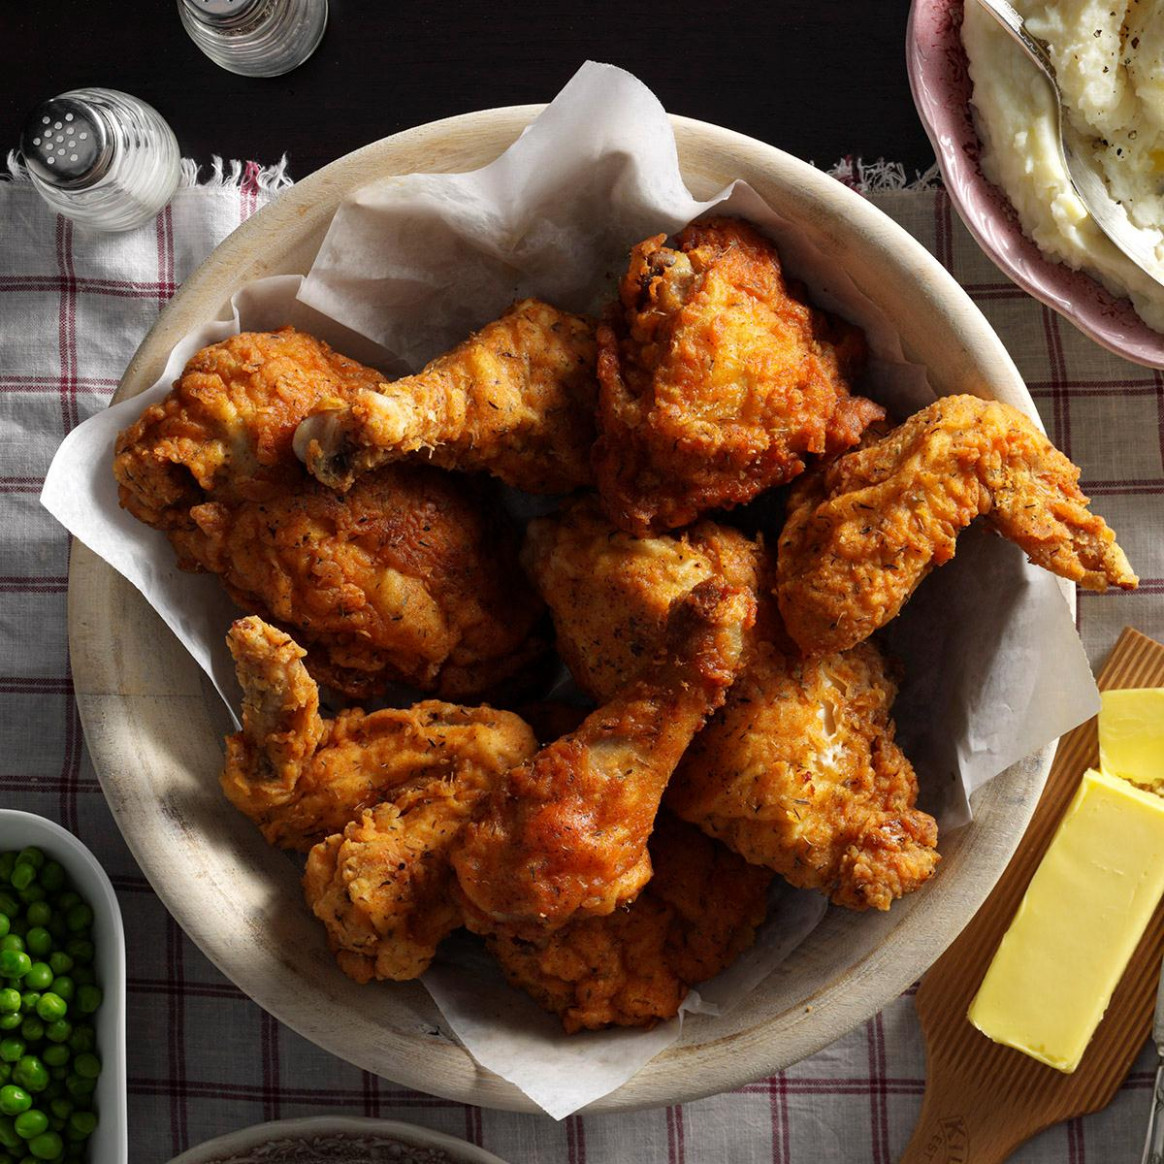 Best-Ever Fried Chicken Recipe | Taste of Home - chicken recipes taste